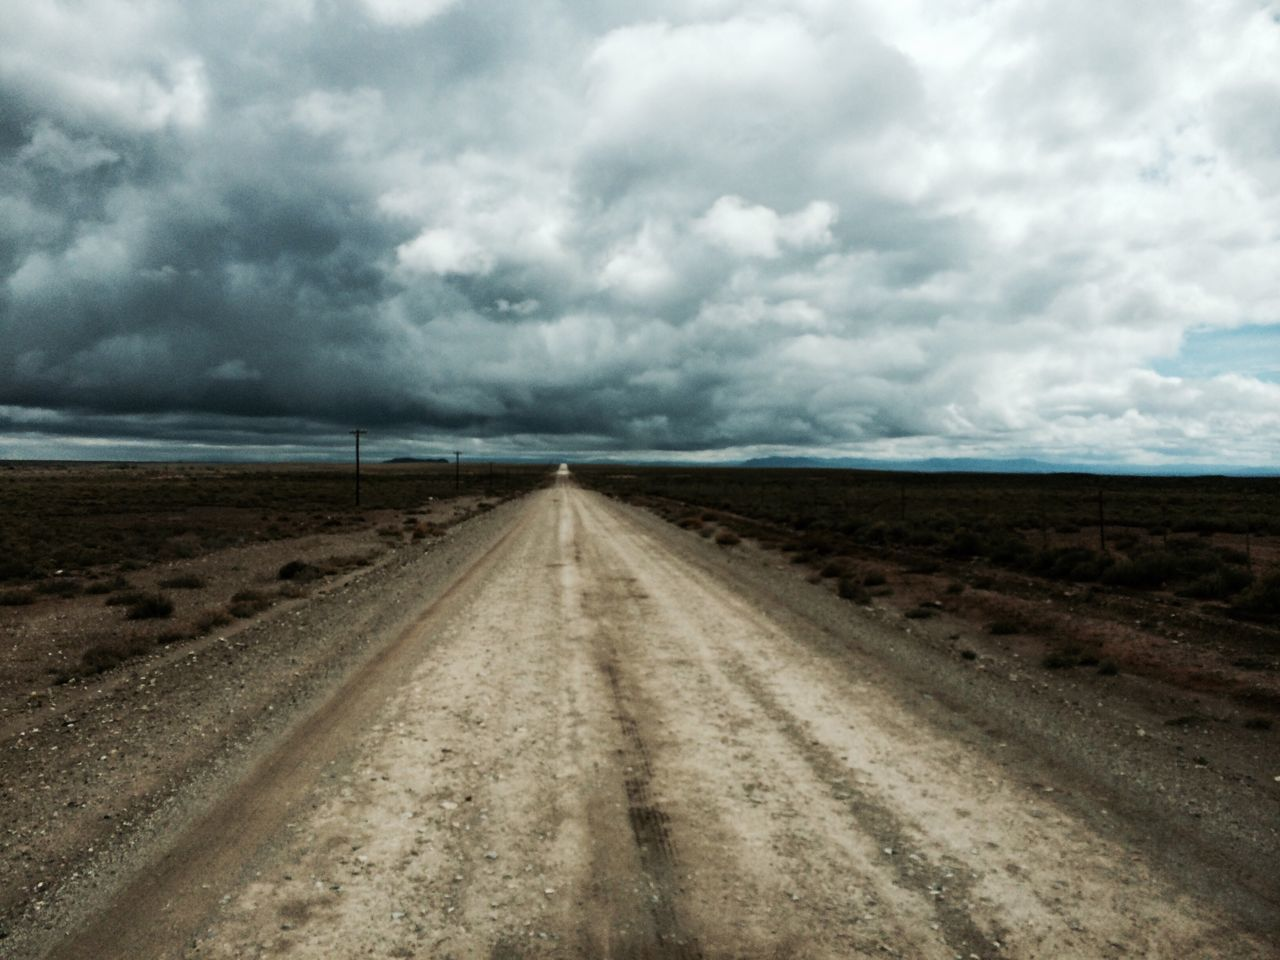 cloud - sky, weather, sky, the way forward, landscape, day, nature, road, no people, scenics, storm cloud, outdoors, beauty in nature